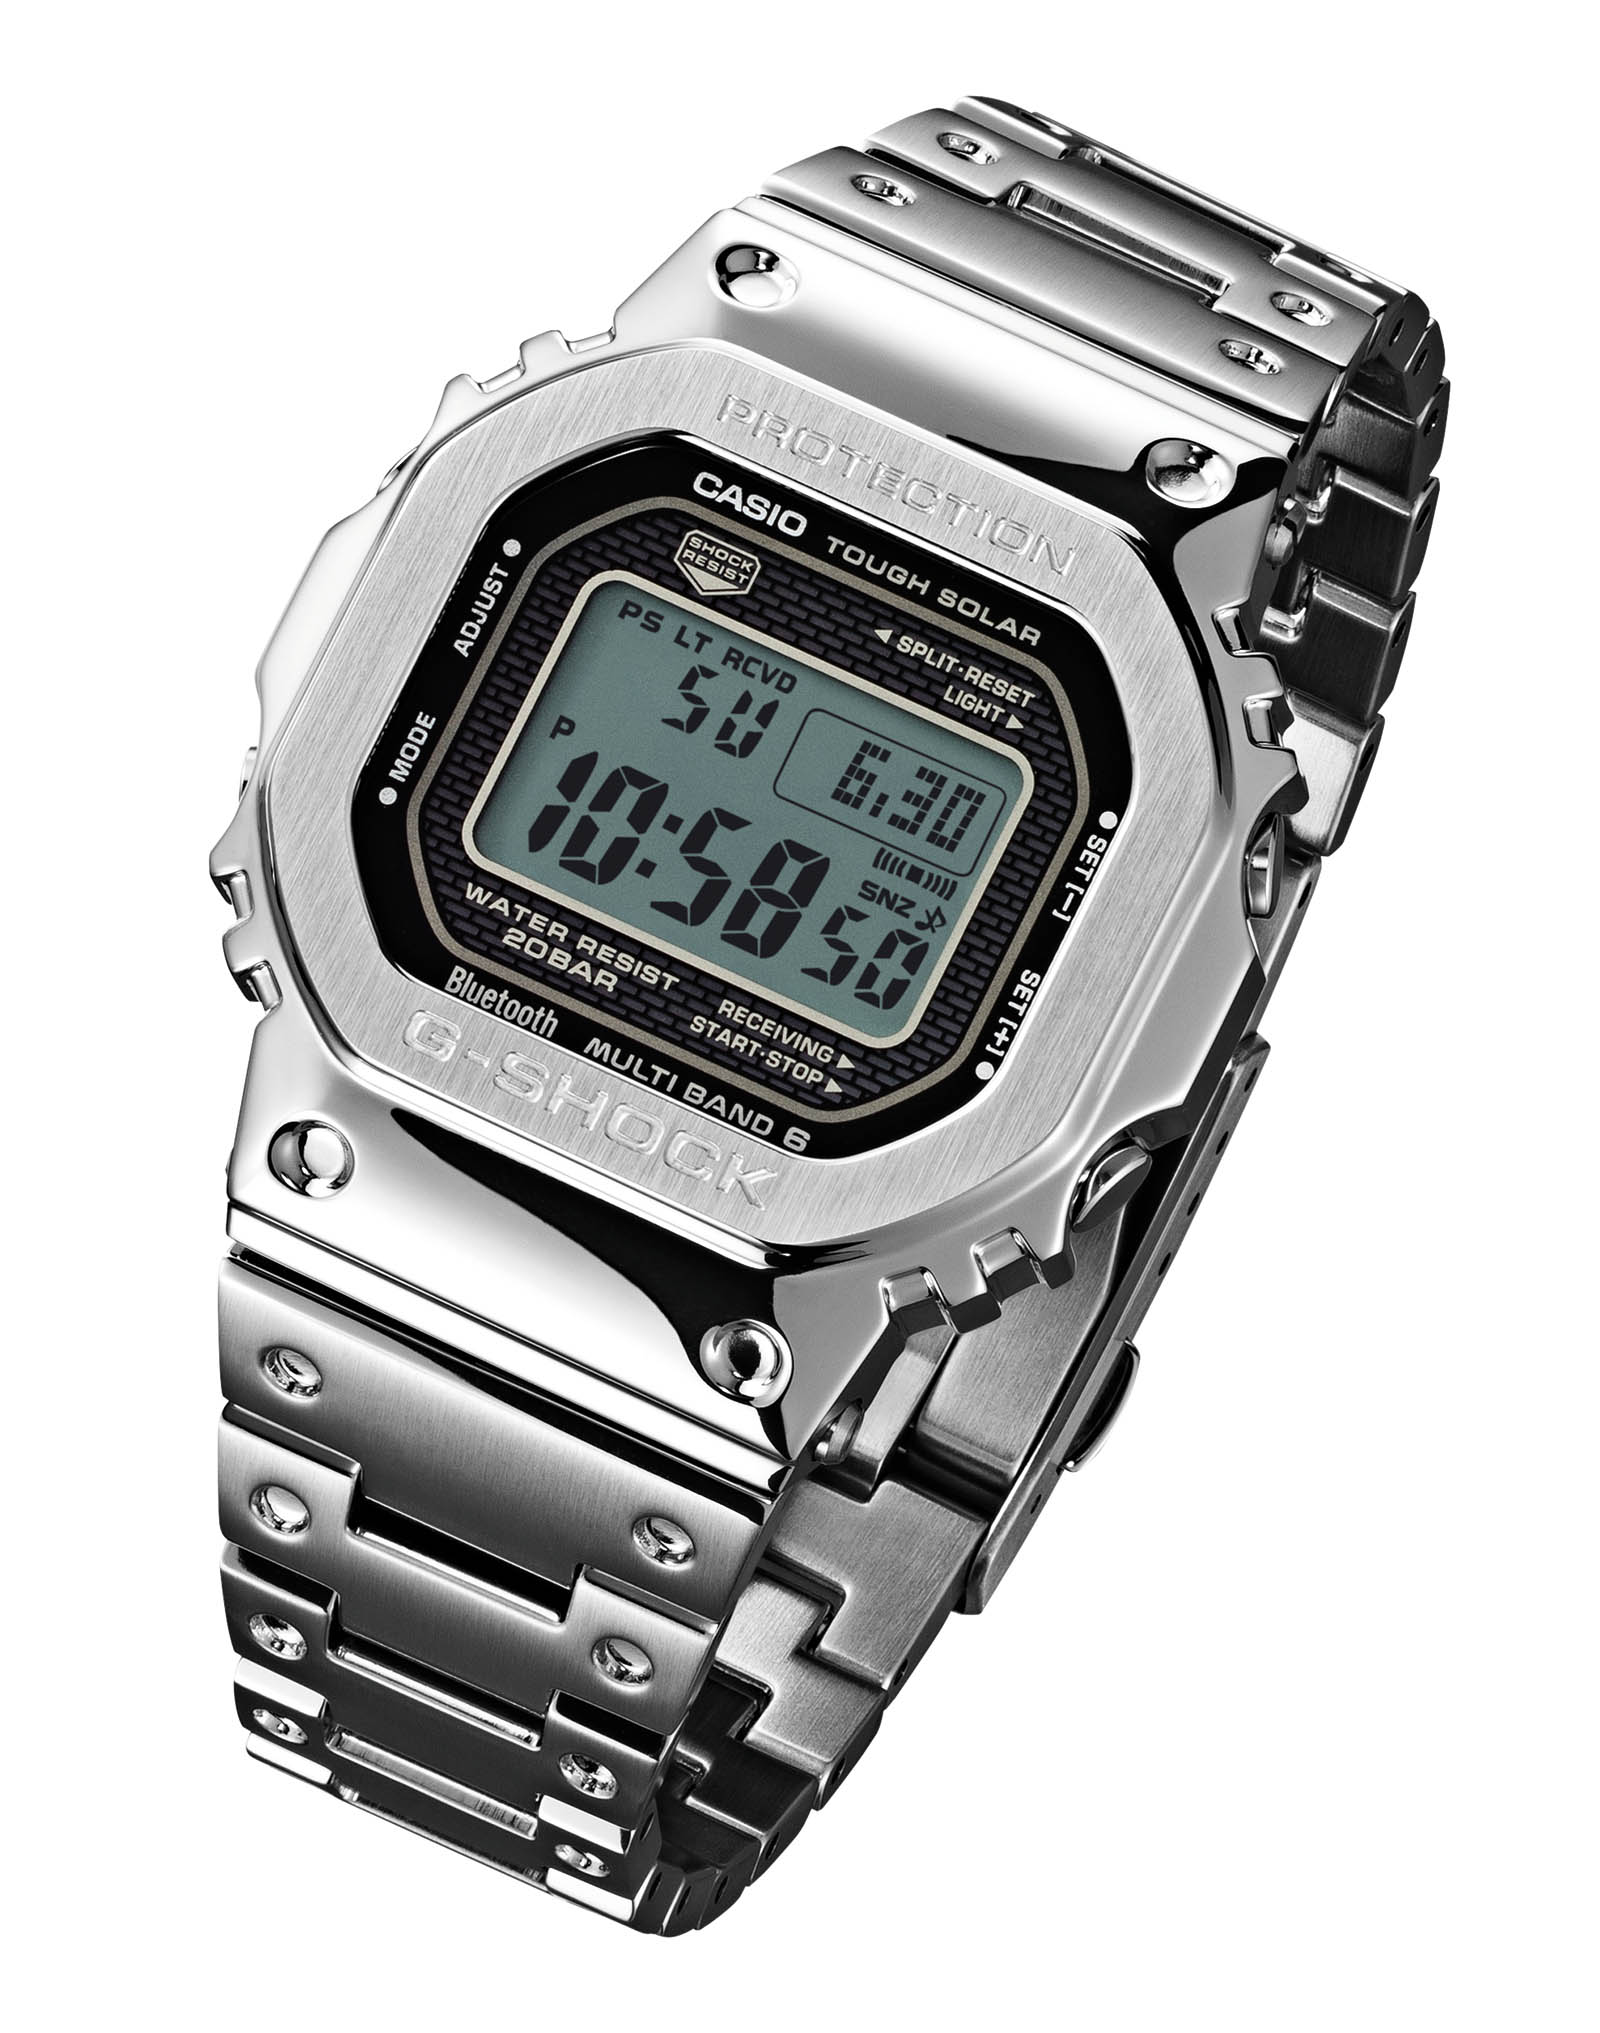 Casio G-Shock GMW-B5000 3